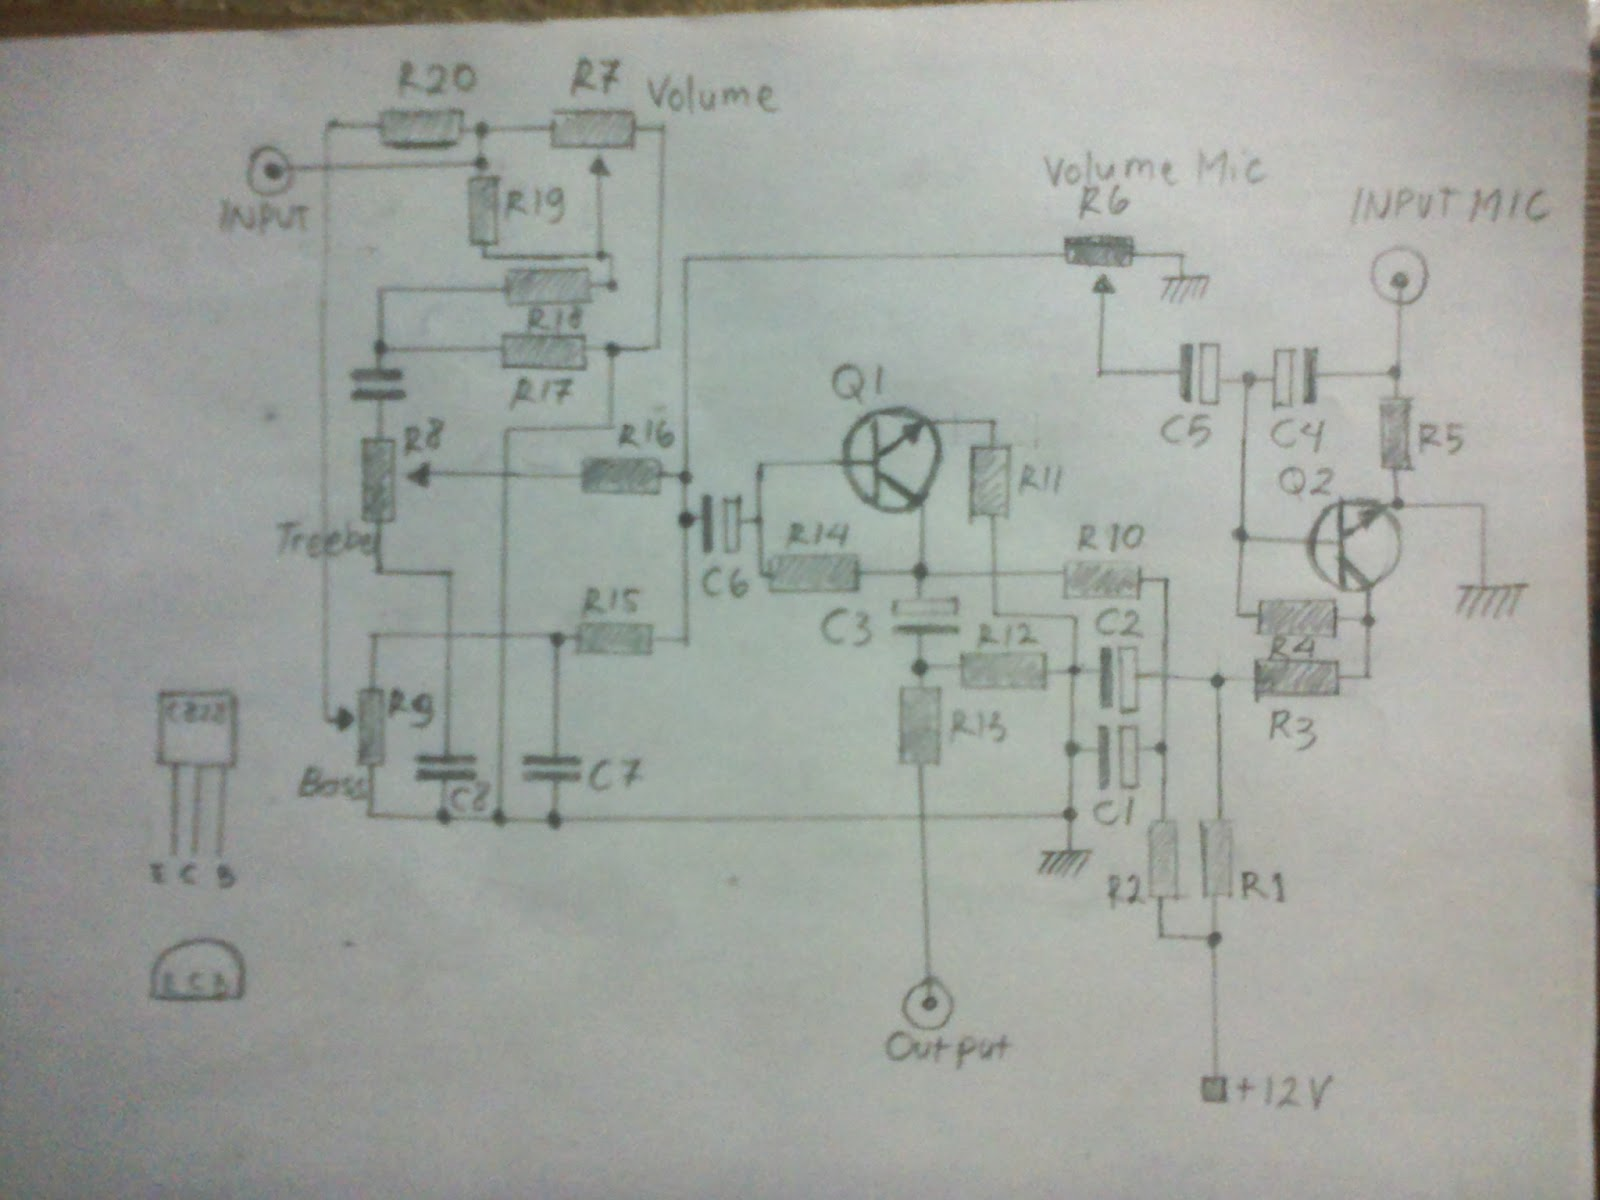 Tone Control Circuit Schematic Mic Trusted Schematics Diagram Stereo Pre Amplifier Based Tda1524a C828 With Amp 6c4 Guitar